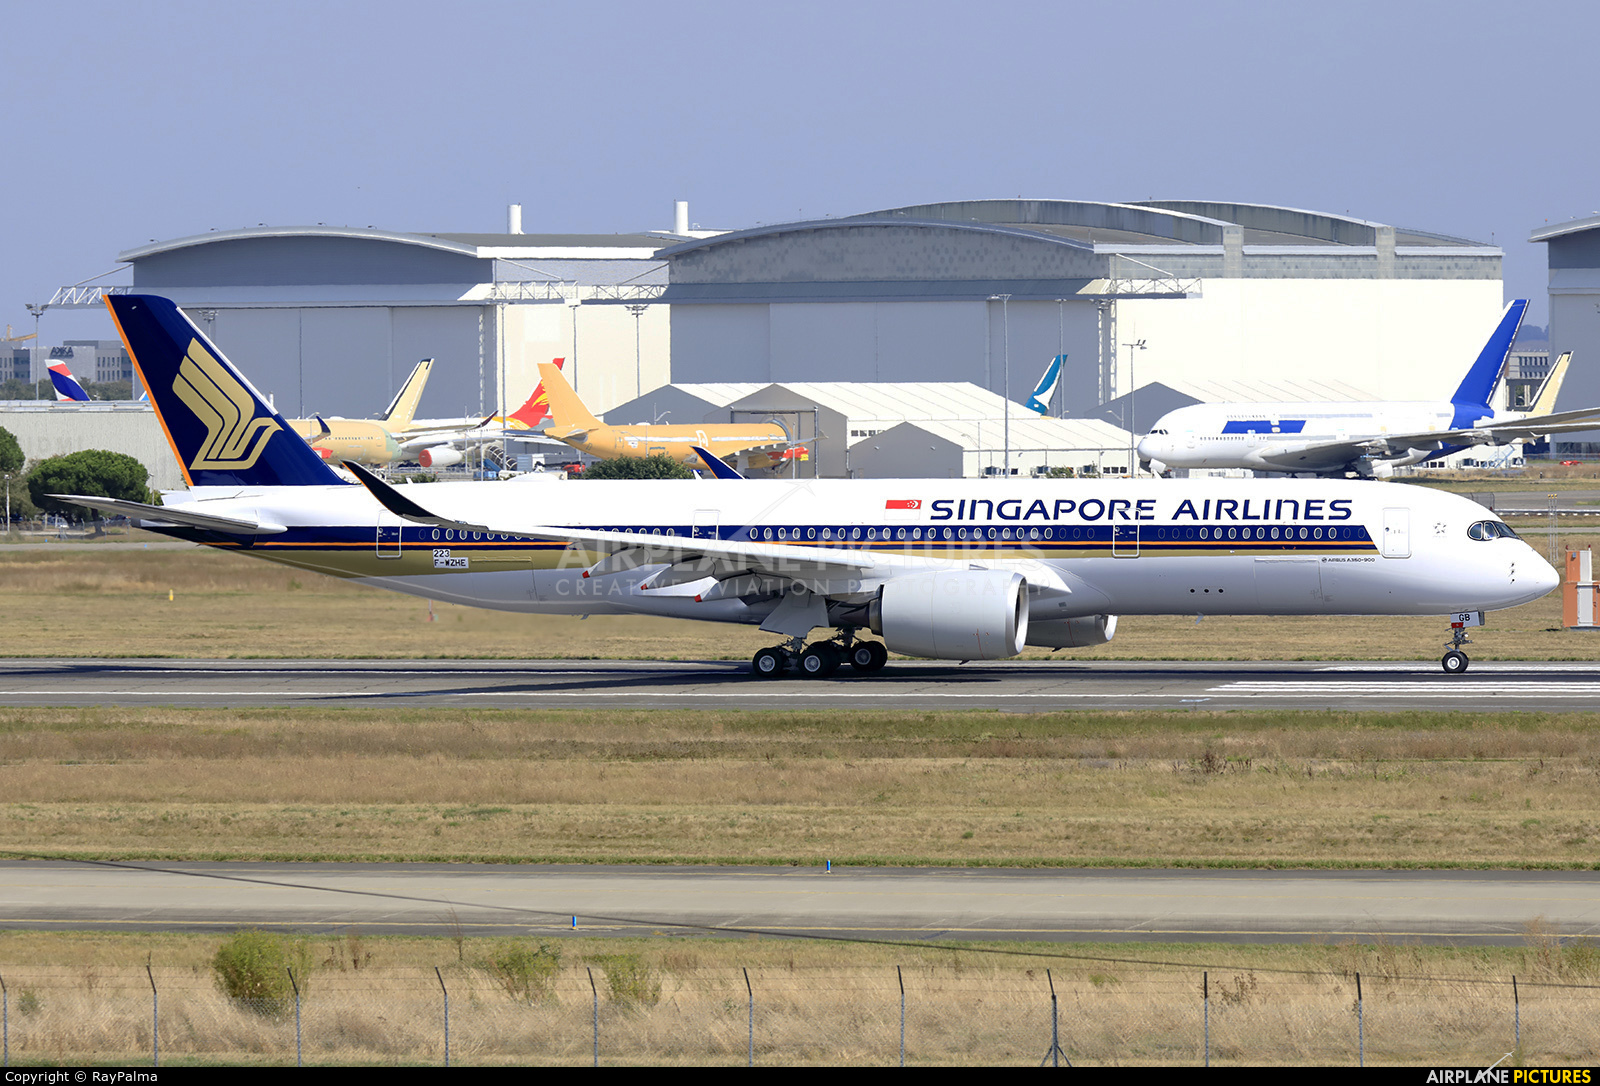 Singapore Airlines 9V-SGB aircraft at Toulouse - Blagnac